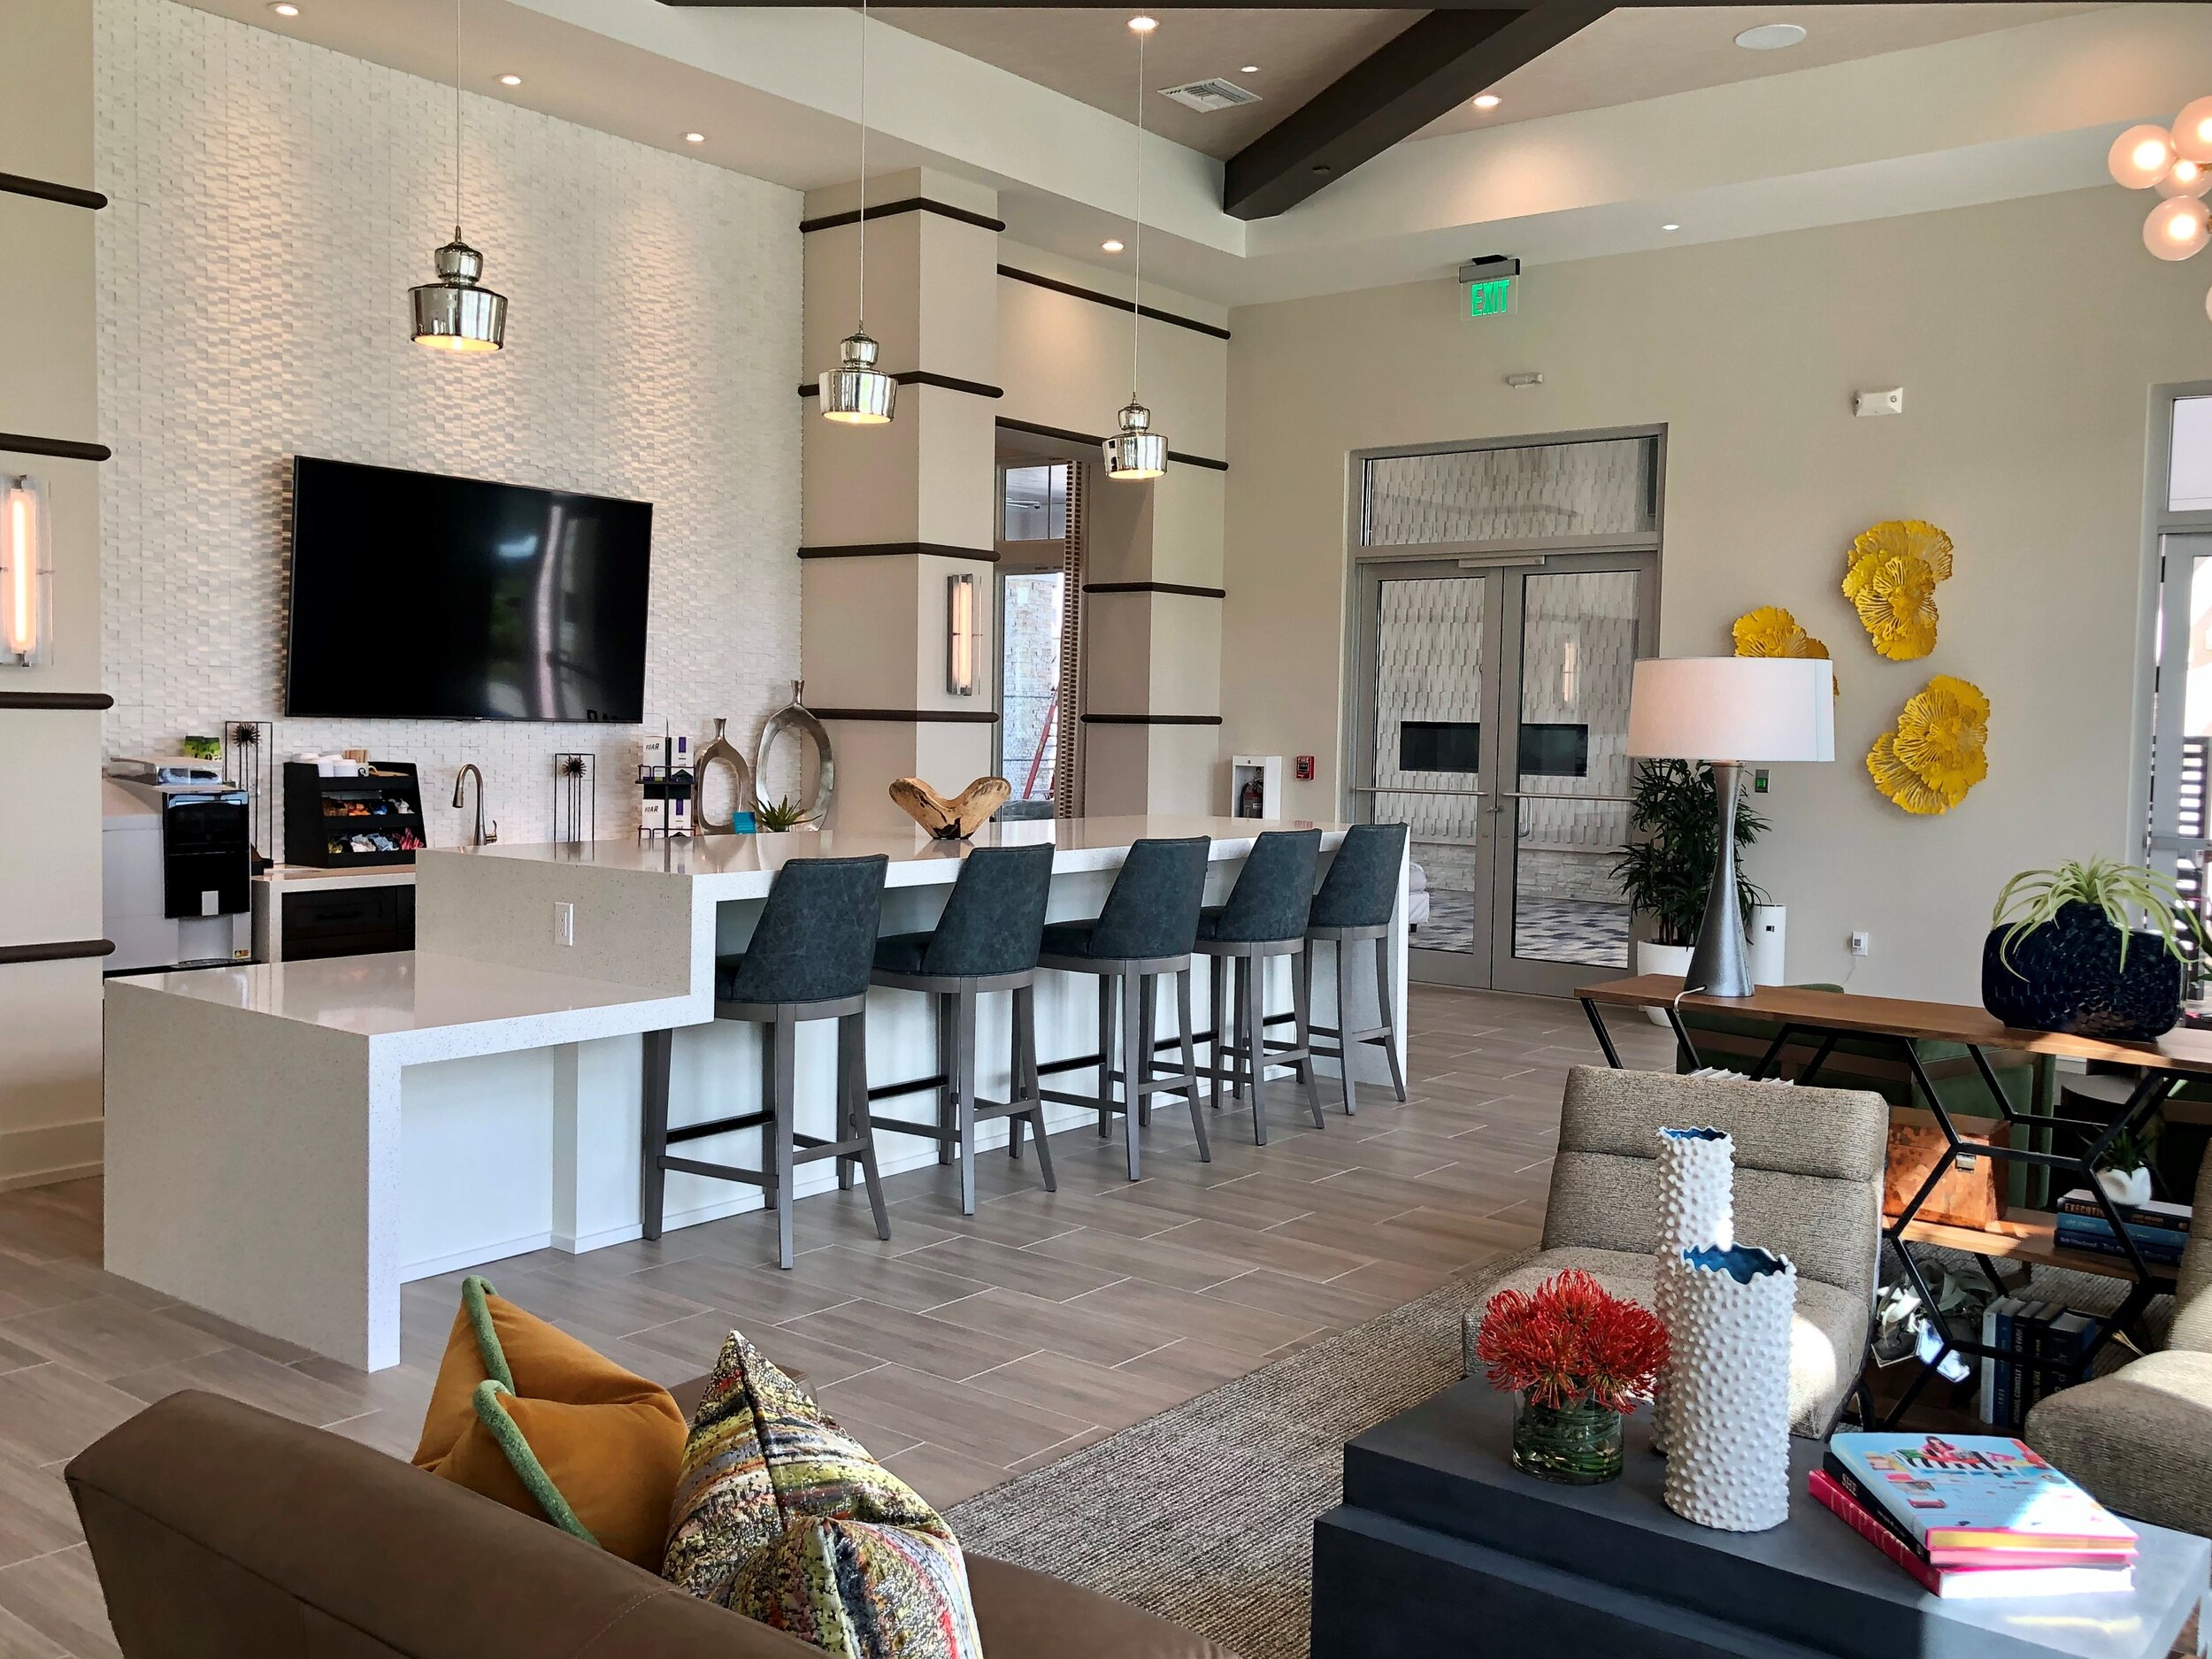 Palmore Amenities That Celebrate The Quintessential Florida Lifestyle Interior Design Winter Park Orlando Naples Beasley Henley